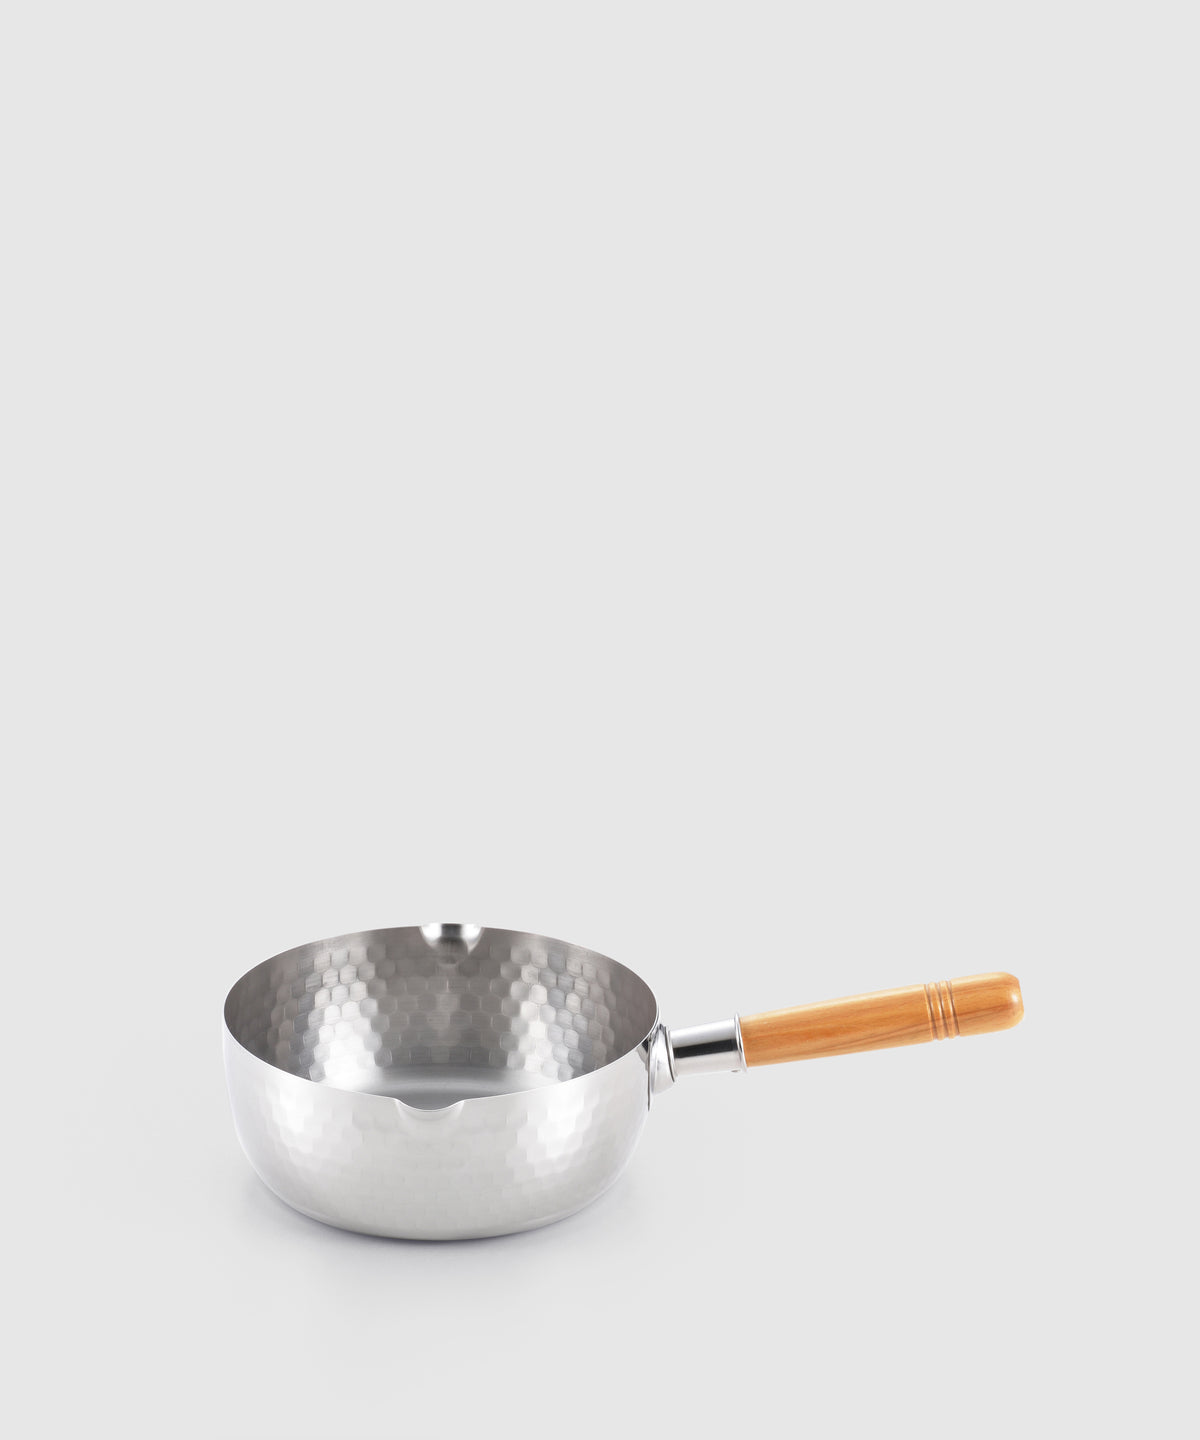 "8"" Japanese Stainless Steel All-Purpose Pot"